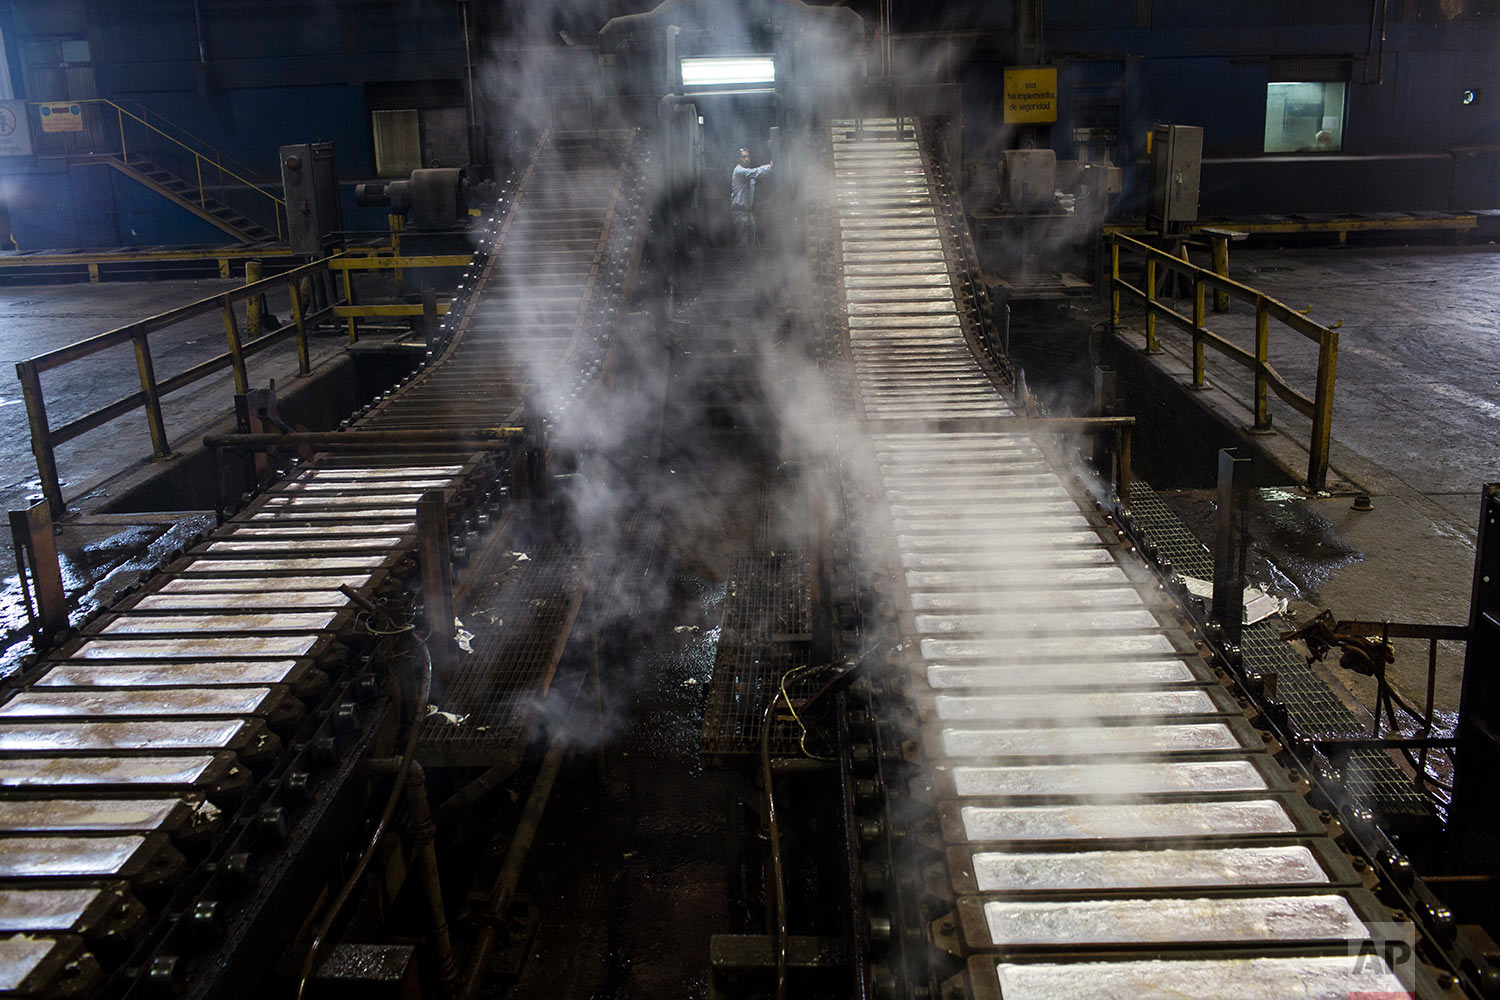 In this Nov. 6, 2017 photo, a worker supervises the filling of aluminium bars in Venalum, in Ciudad Guayana, Bolivar state, Venezuela. U.S. companies in the 1950s zeroed in on Venezuela's vast resources, pouring money into factories for turning iron ore to steel and bauxite for aluminum as well as rails and river ports for shipping it to market. (AP Photo/Rodrigo Abd)